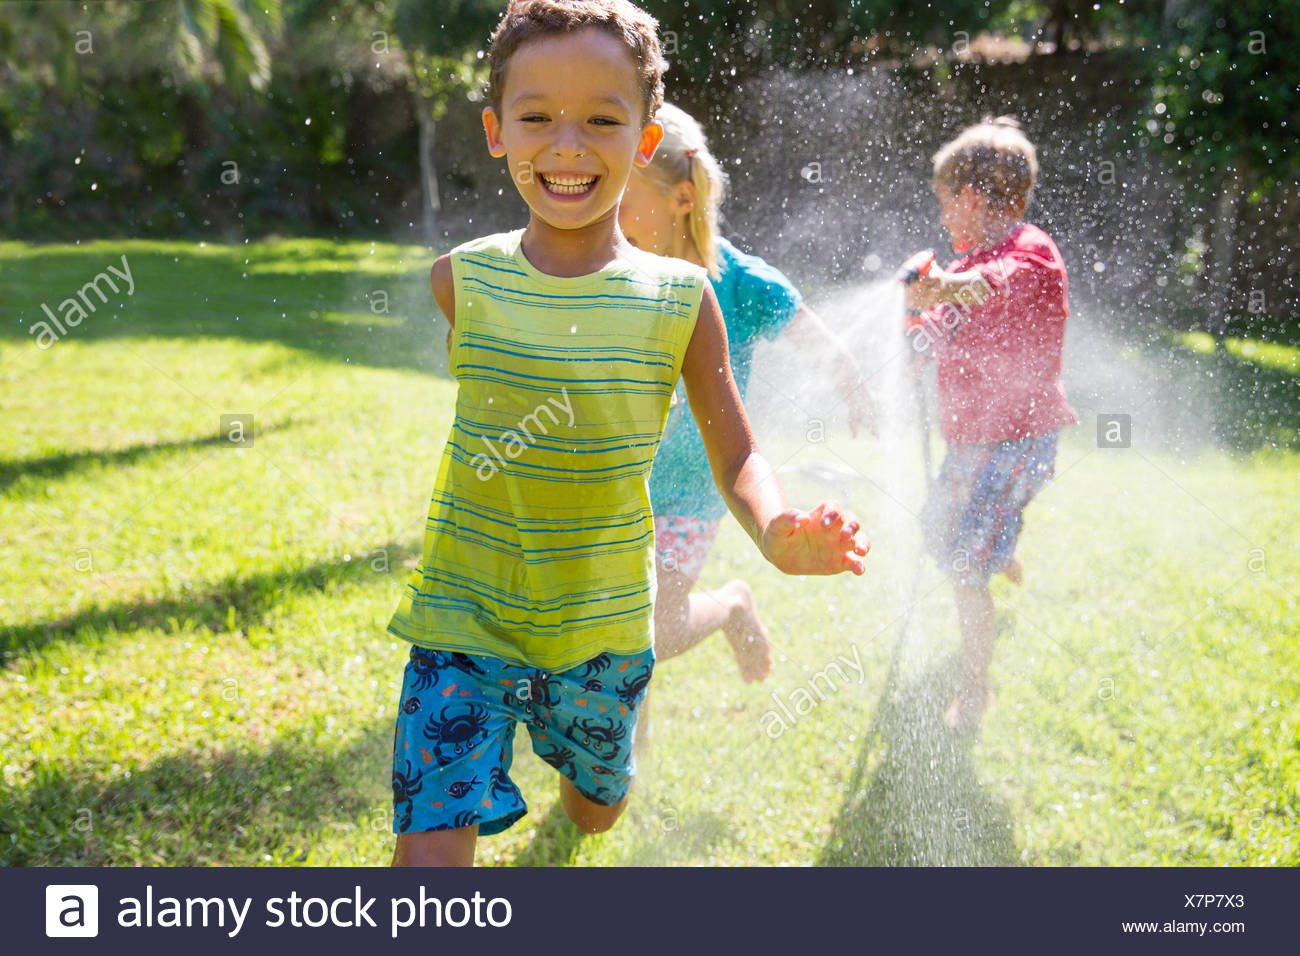 Three children chasing each other in garden with water sprinkler - Stock Image